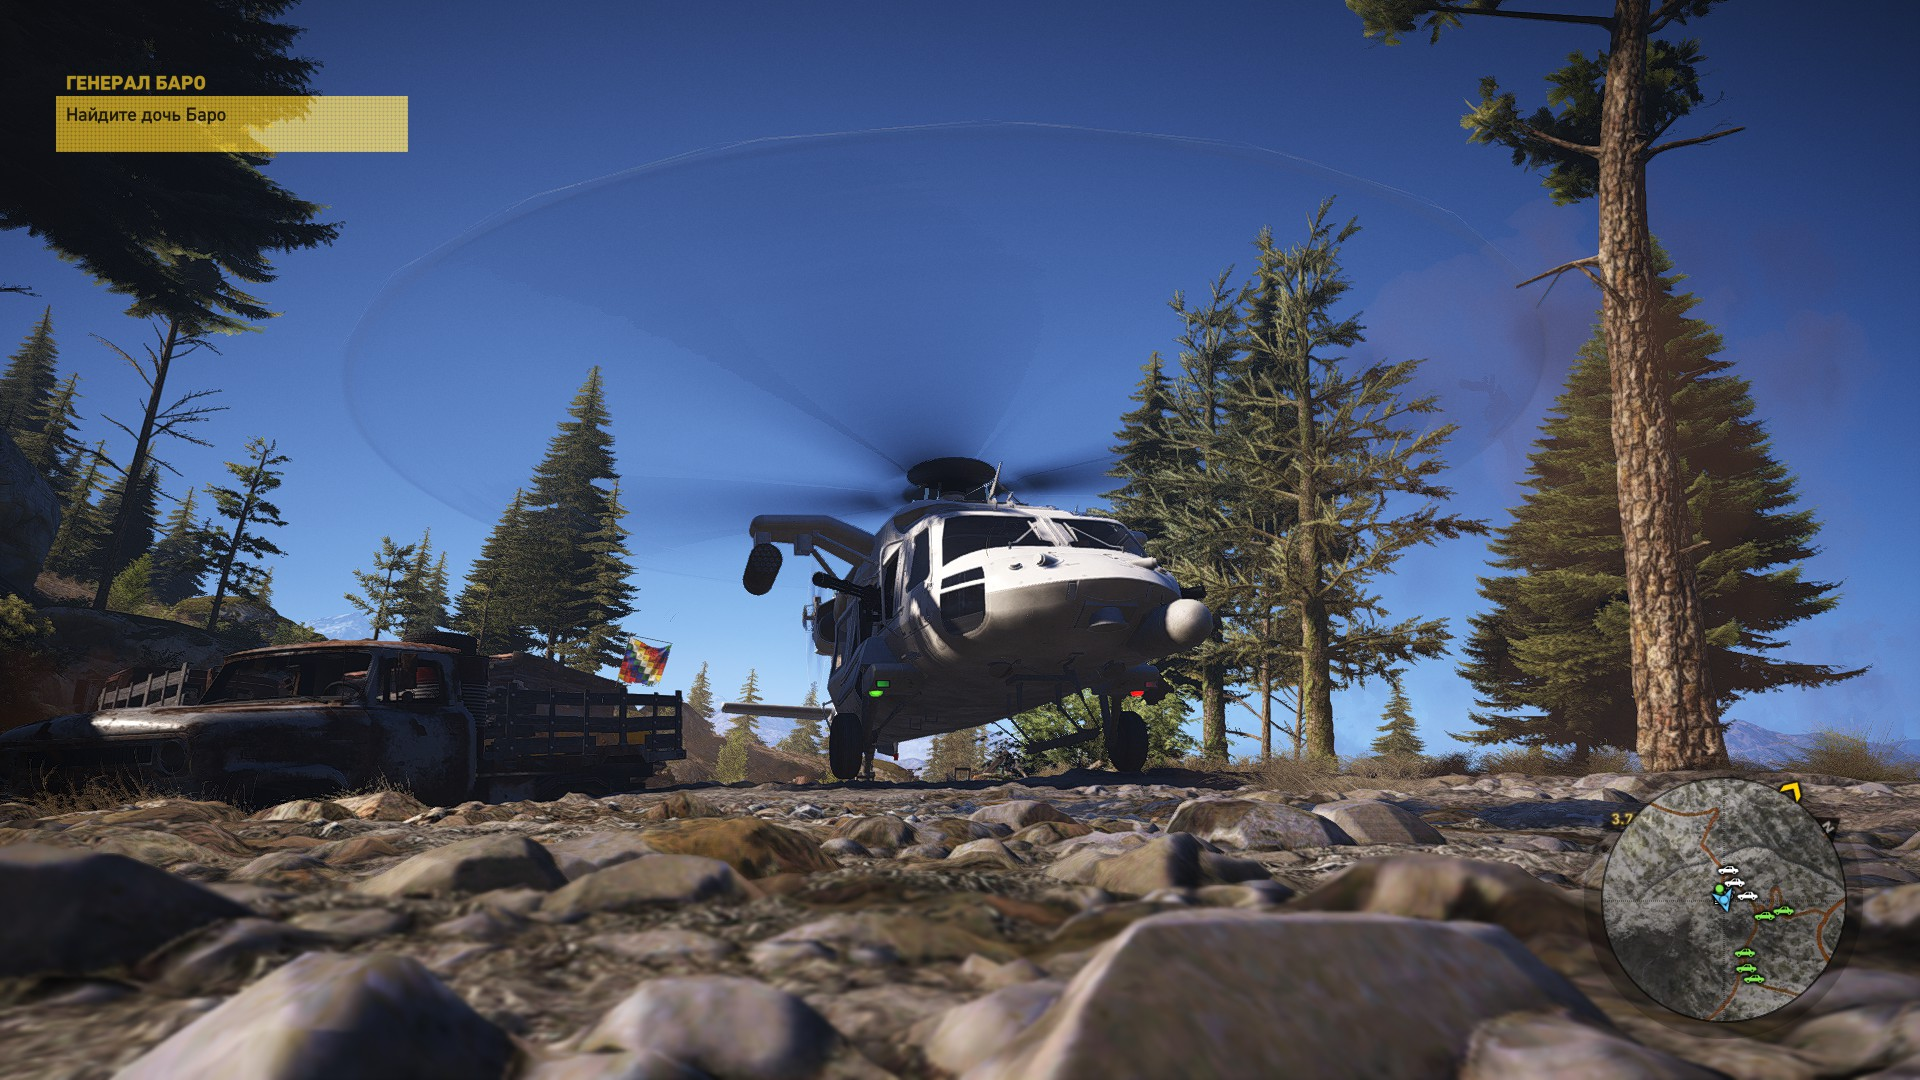 Tom Clancy's Ghost Recon® Wildlands2017-3-22-22-49-54.jpg - Tom Clancy's Ghost Recon: Wildlands